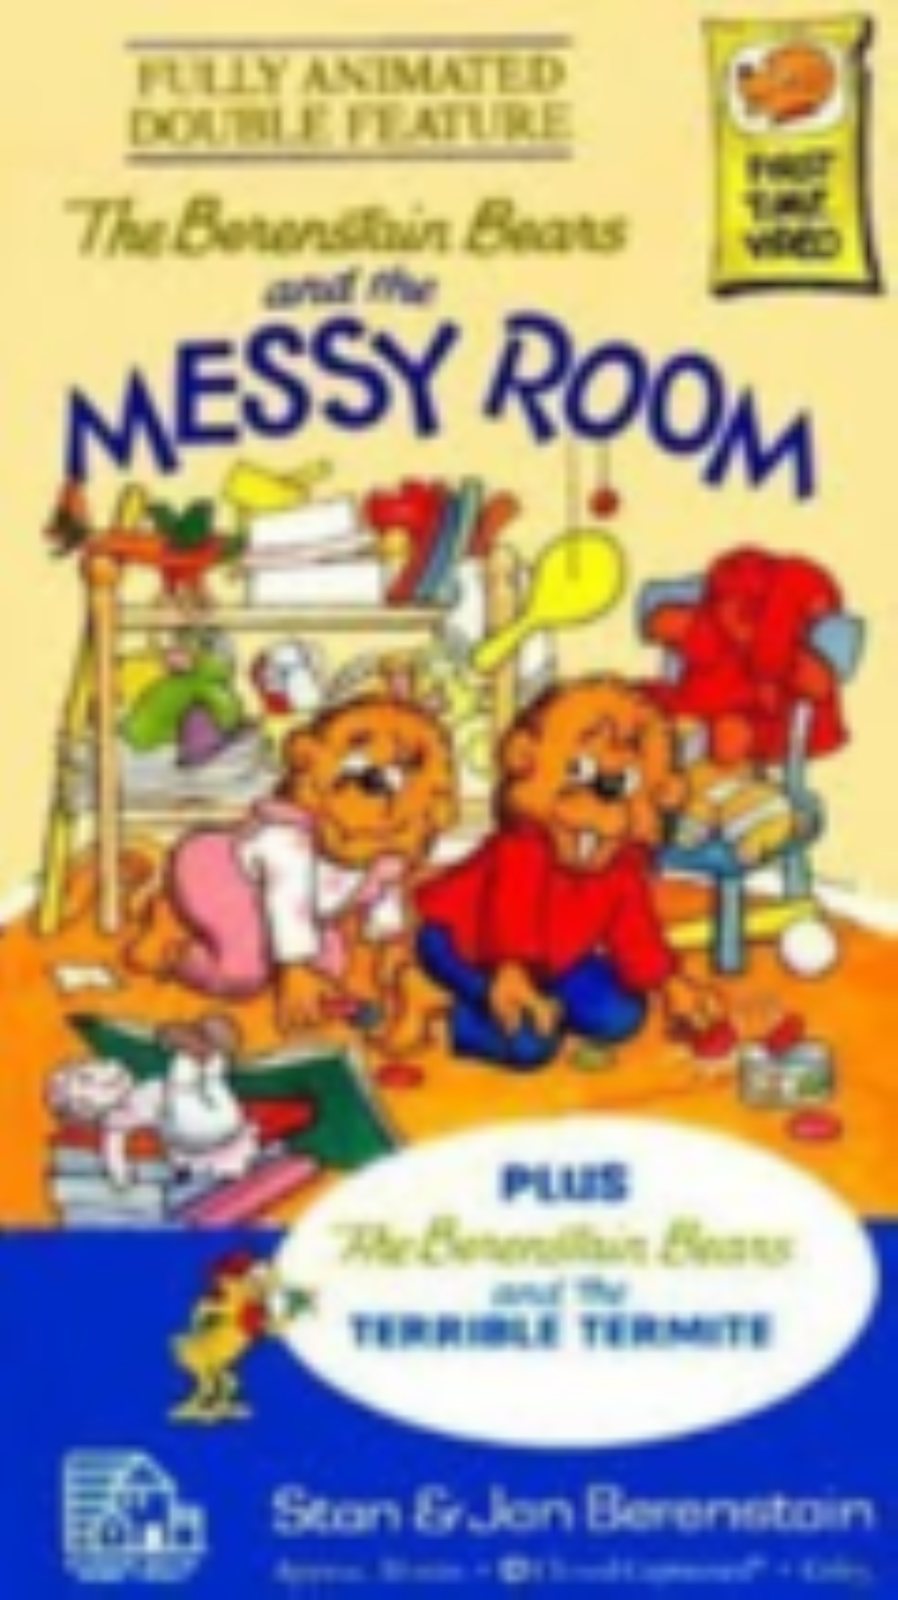 The Berenstain Bears and the Messy Room Vhs